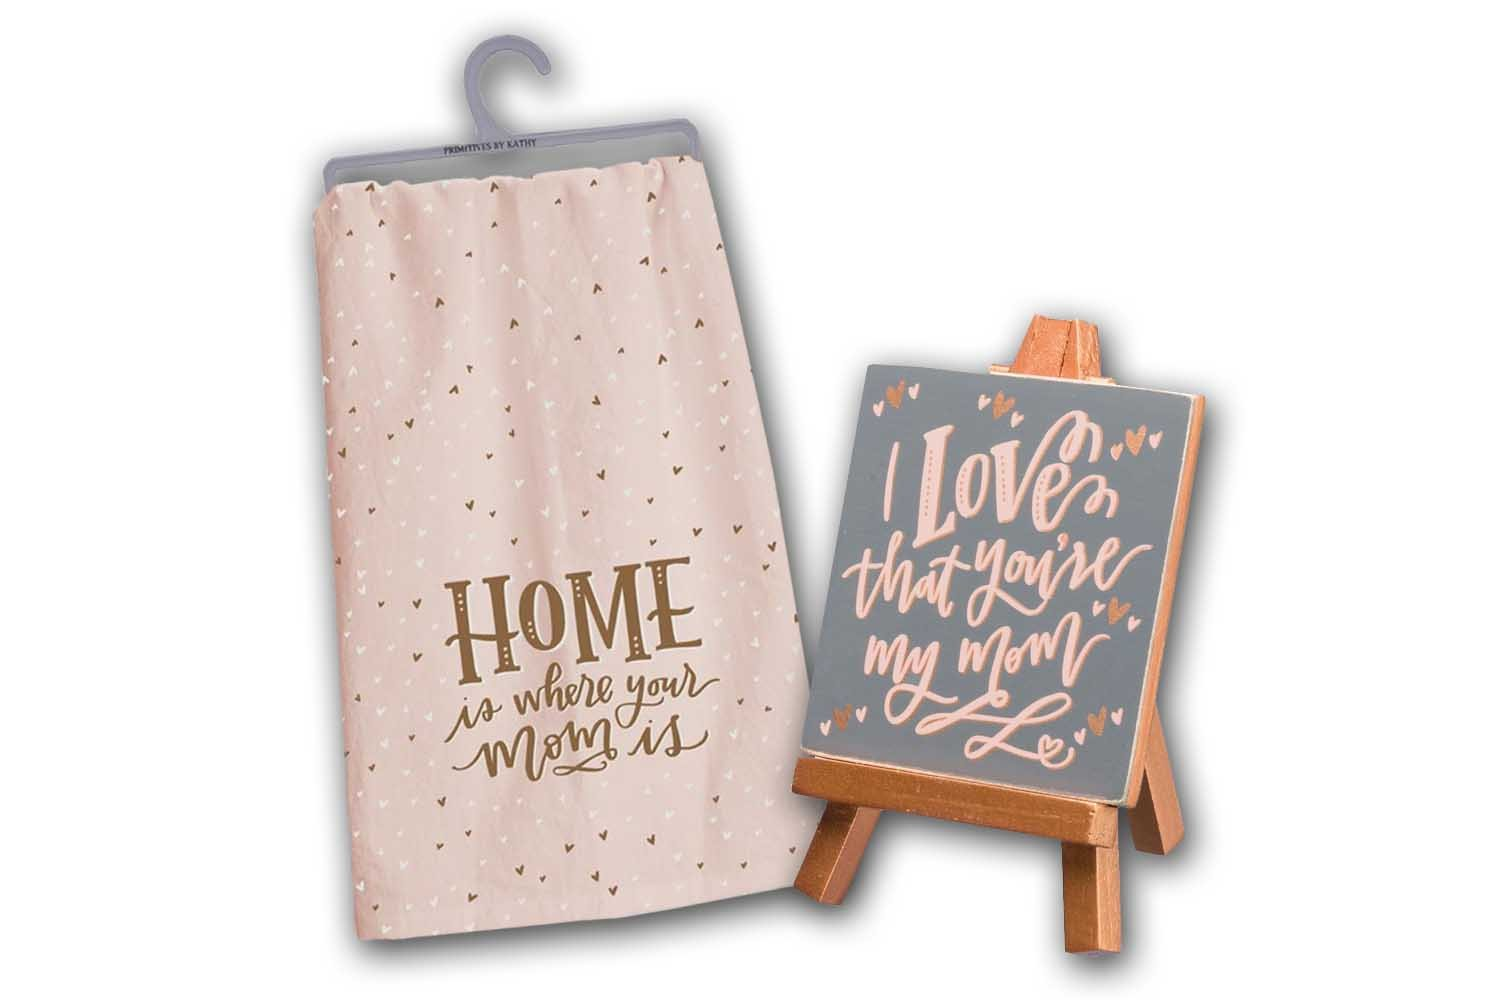 Mom Theme Gift Sets - Mini Easel I Love That Youre My Mom and Dish Towel Home Is Where Your Mom Is